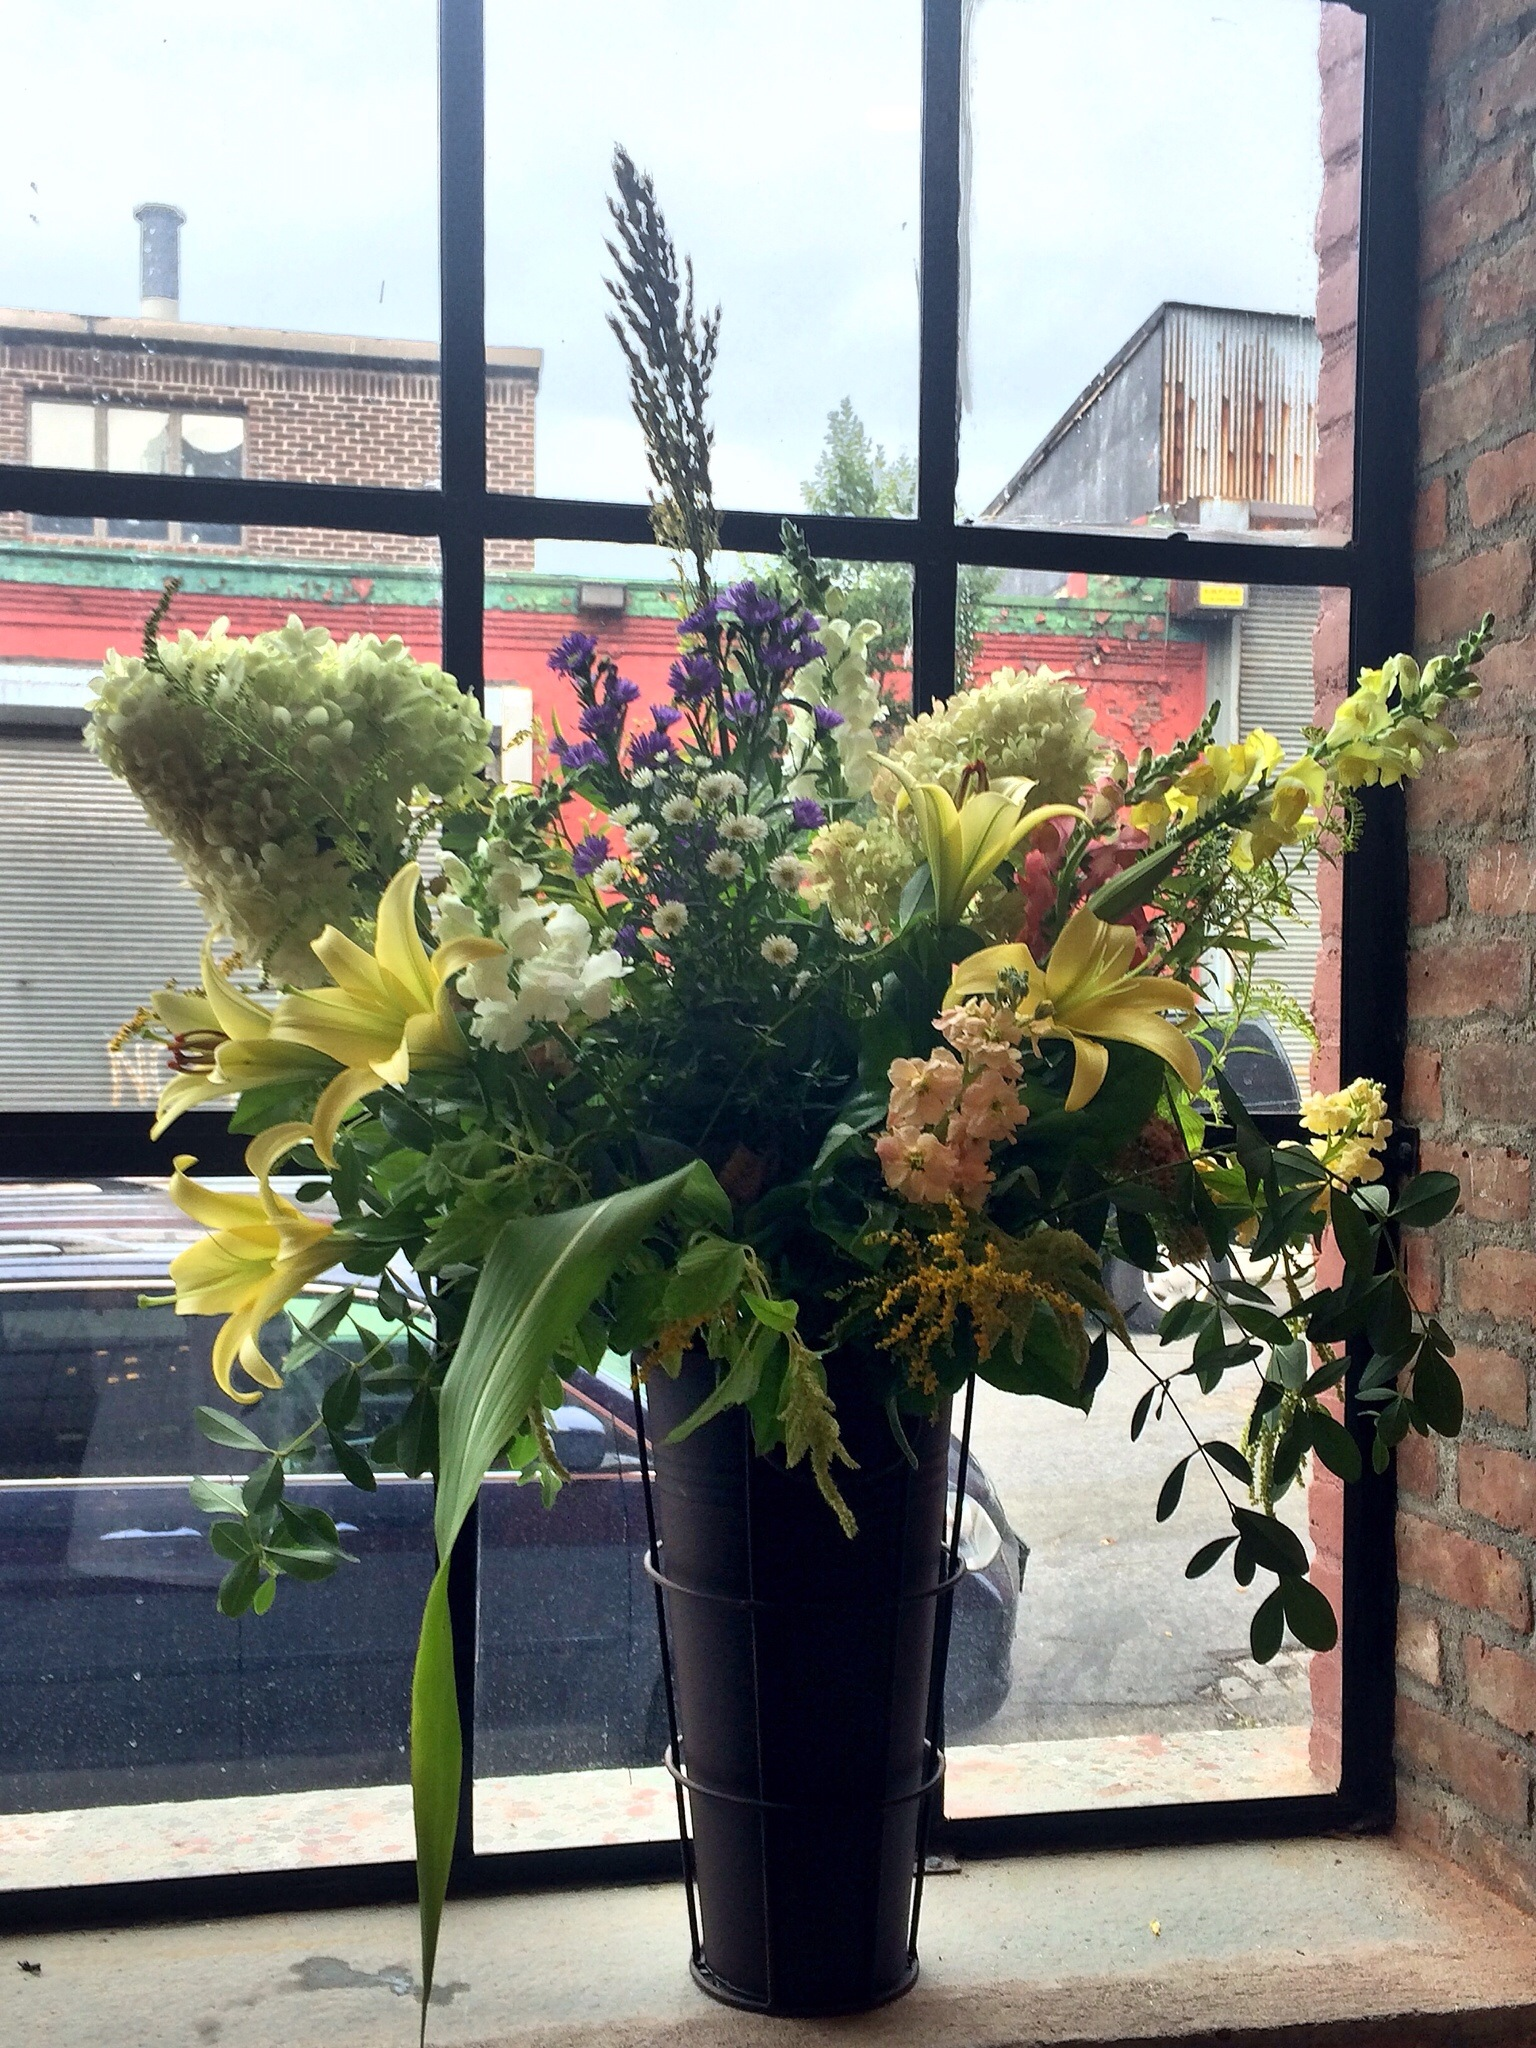 Three galvanized vessels with wrought iron patina were a perfect choice for a fall harvest look of broom corn, hydrangea, and lilies in soft bronze colors in the stunning front window. Photo: KanKan Yu, Washington, D.C.